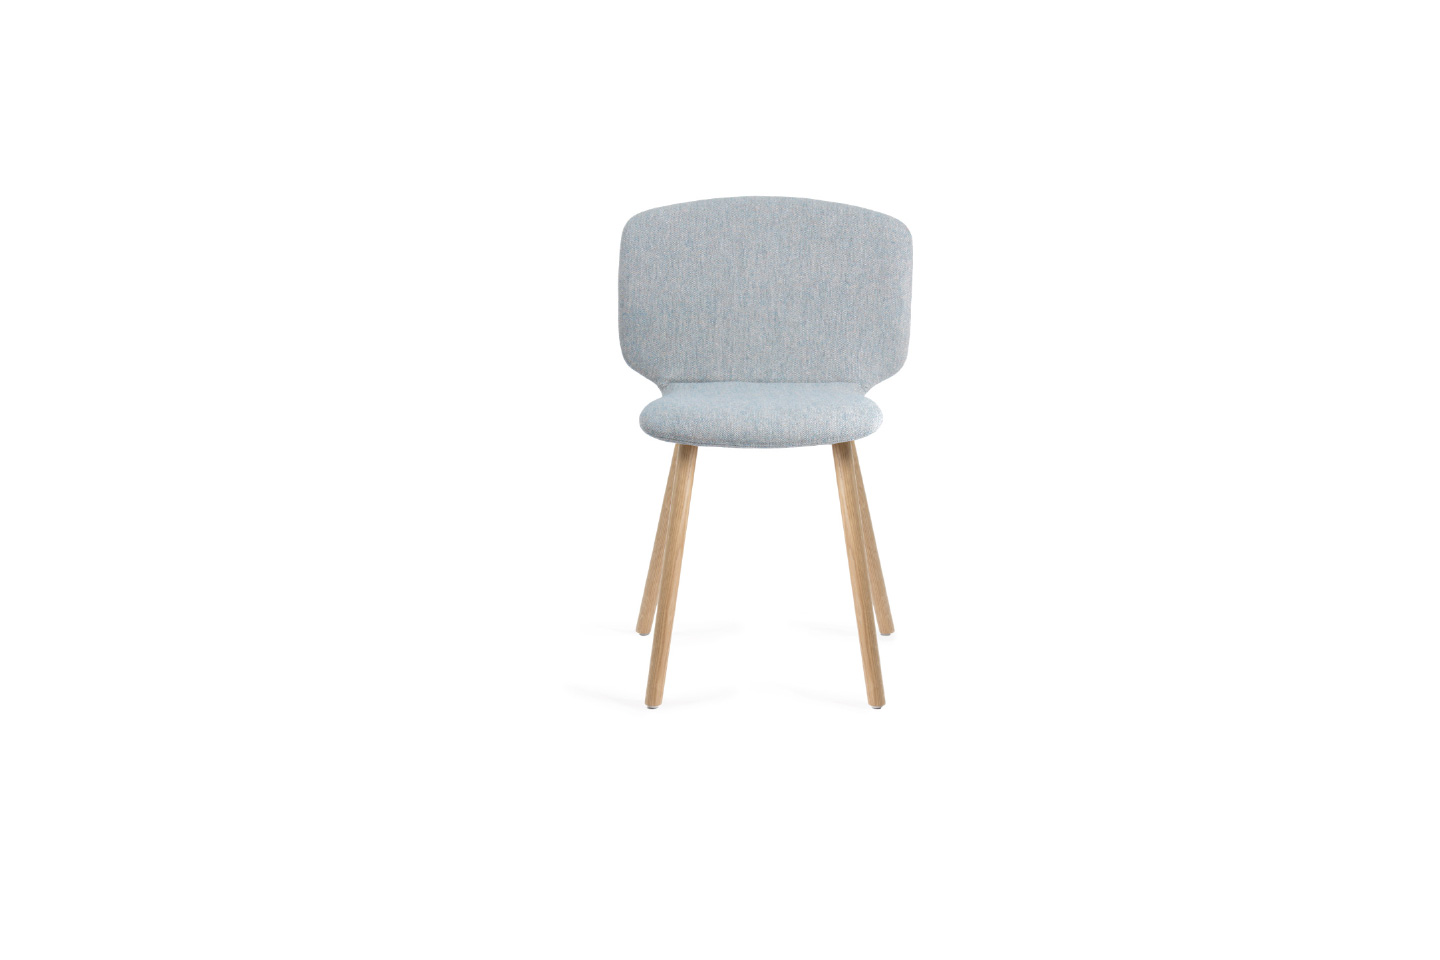 RADAR Chair - 4 legs - Upholstered